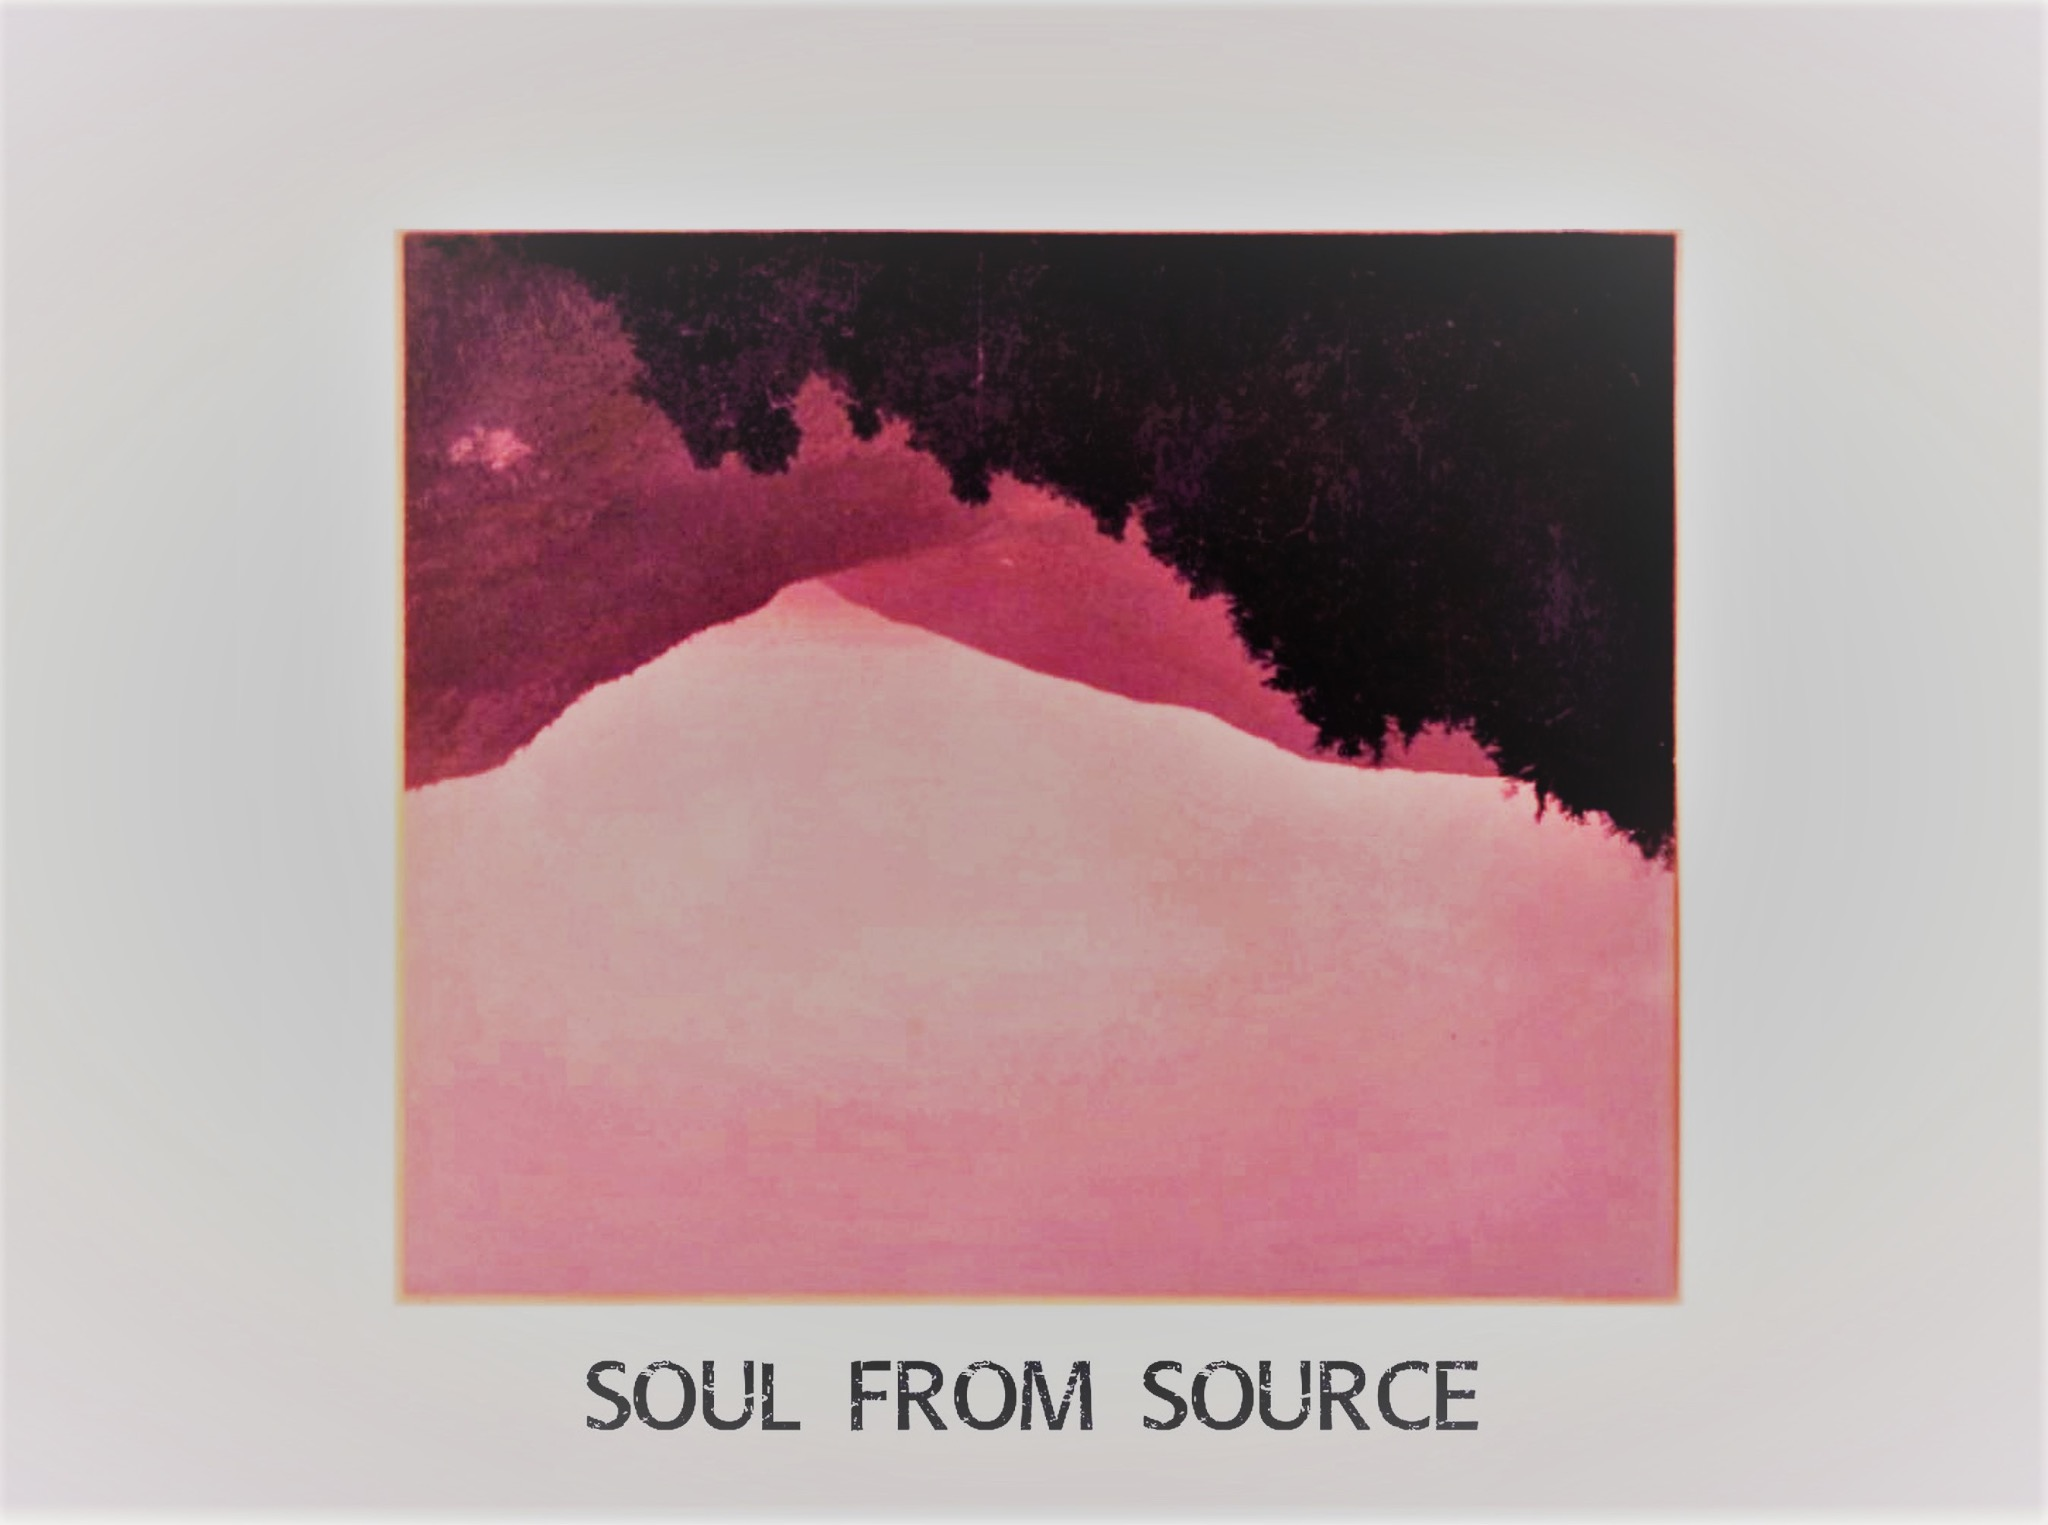 Soul from Source by Andrew Reilly